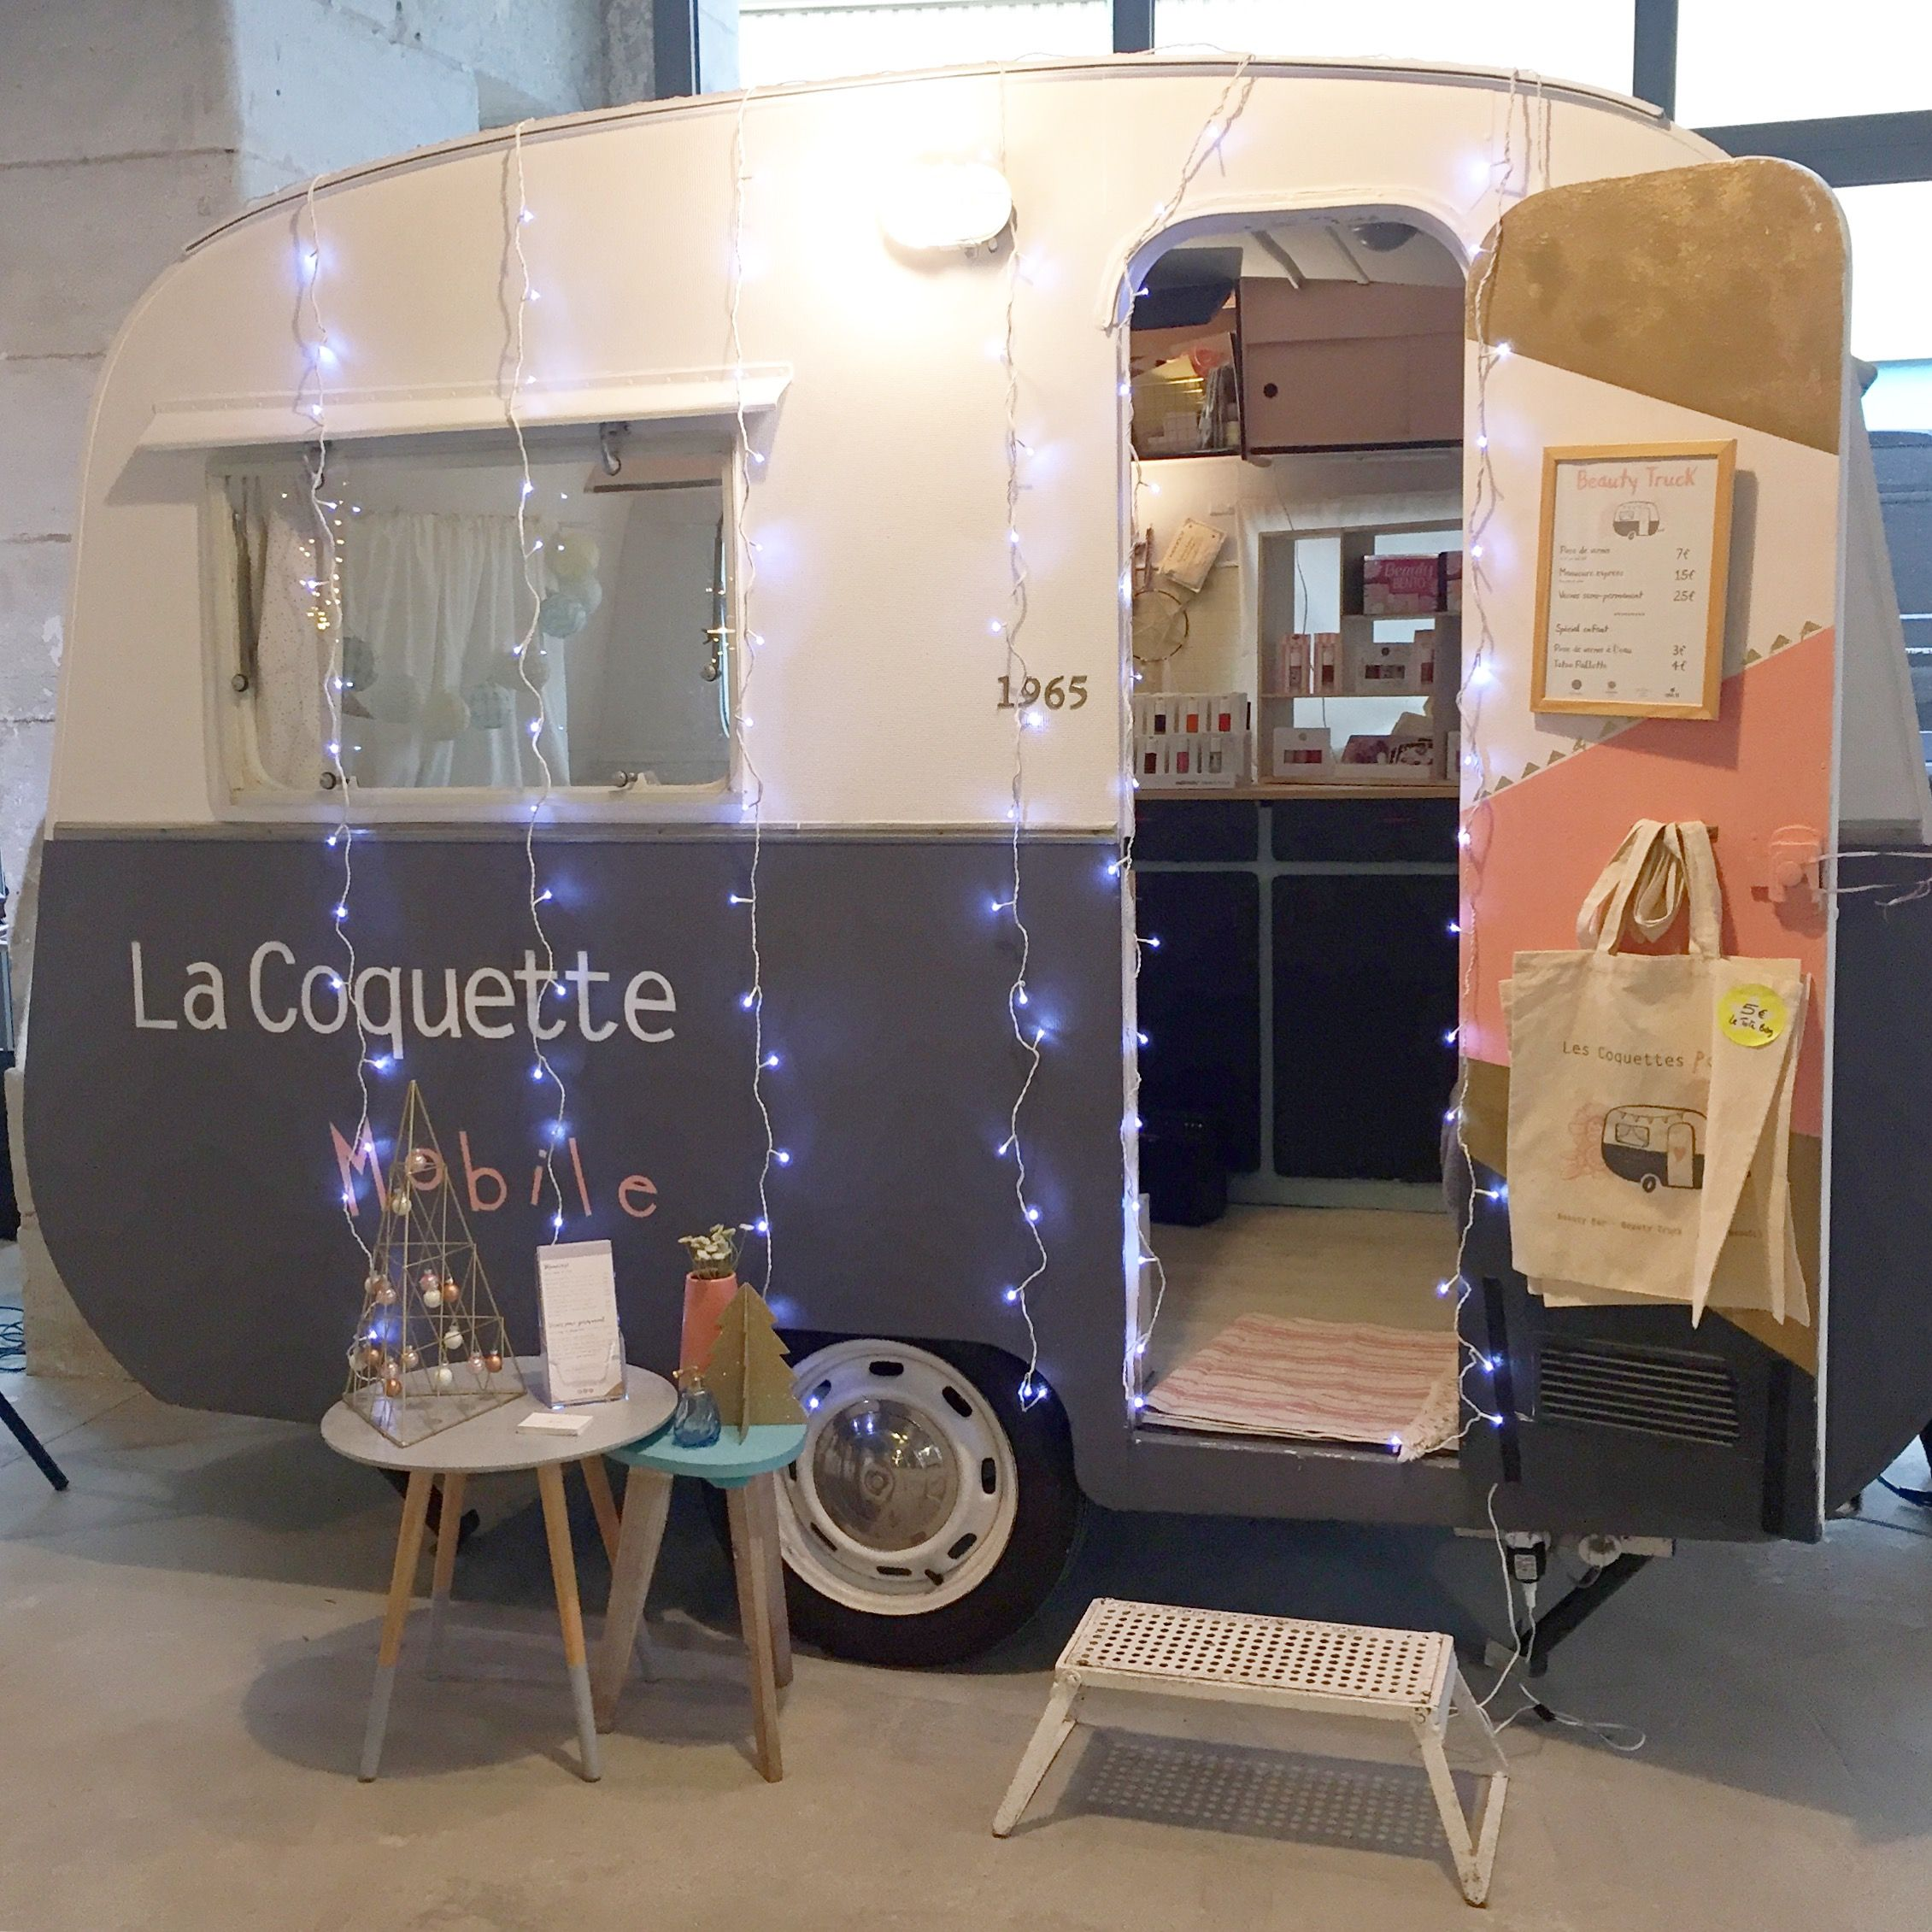 La Coquette Mobile, Beauty Truck, beauté, animation ...